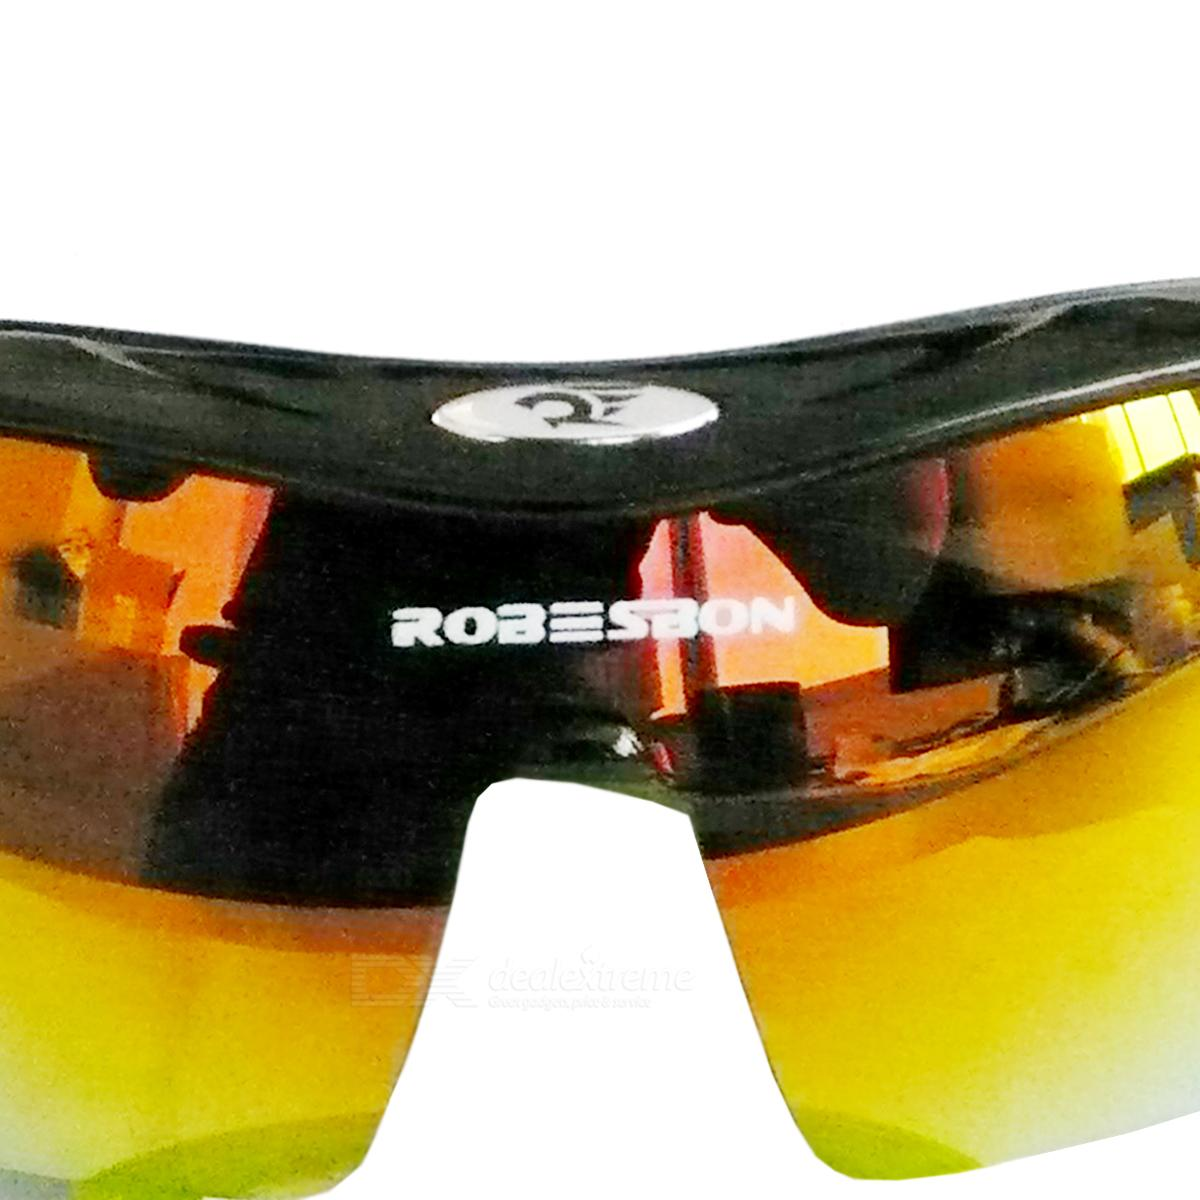 6b8f99034b1 ROBESBON Outdoor Sports Resin Lens PC Frame UV Polarized Sunglasses  Buy  Online at Best Prices in Pakistan